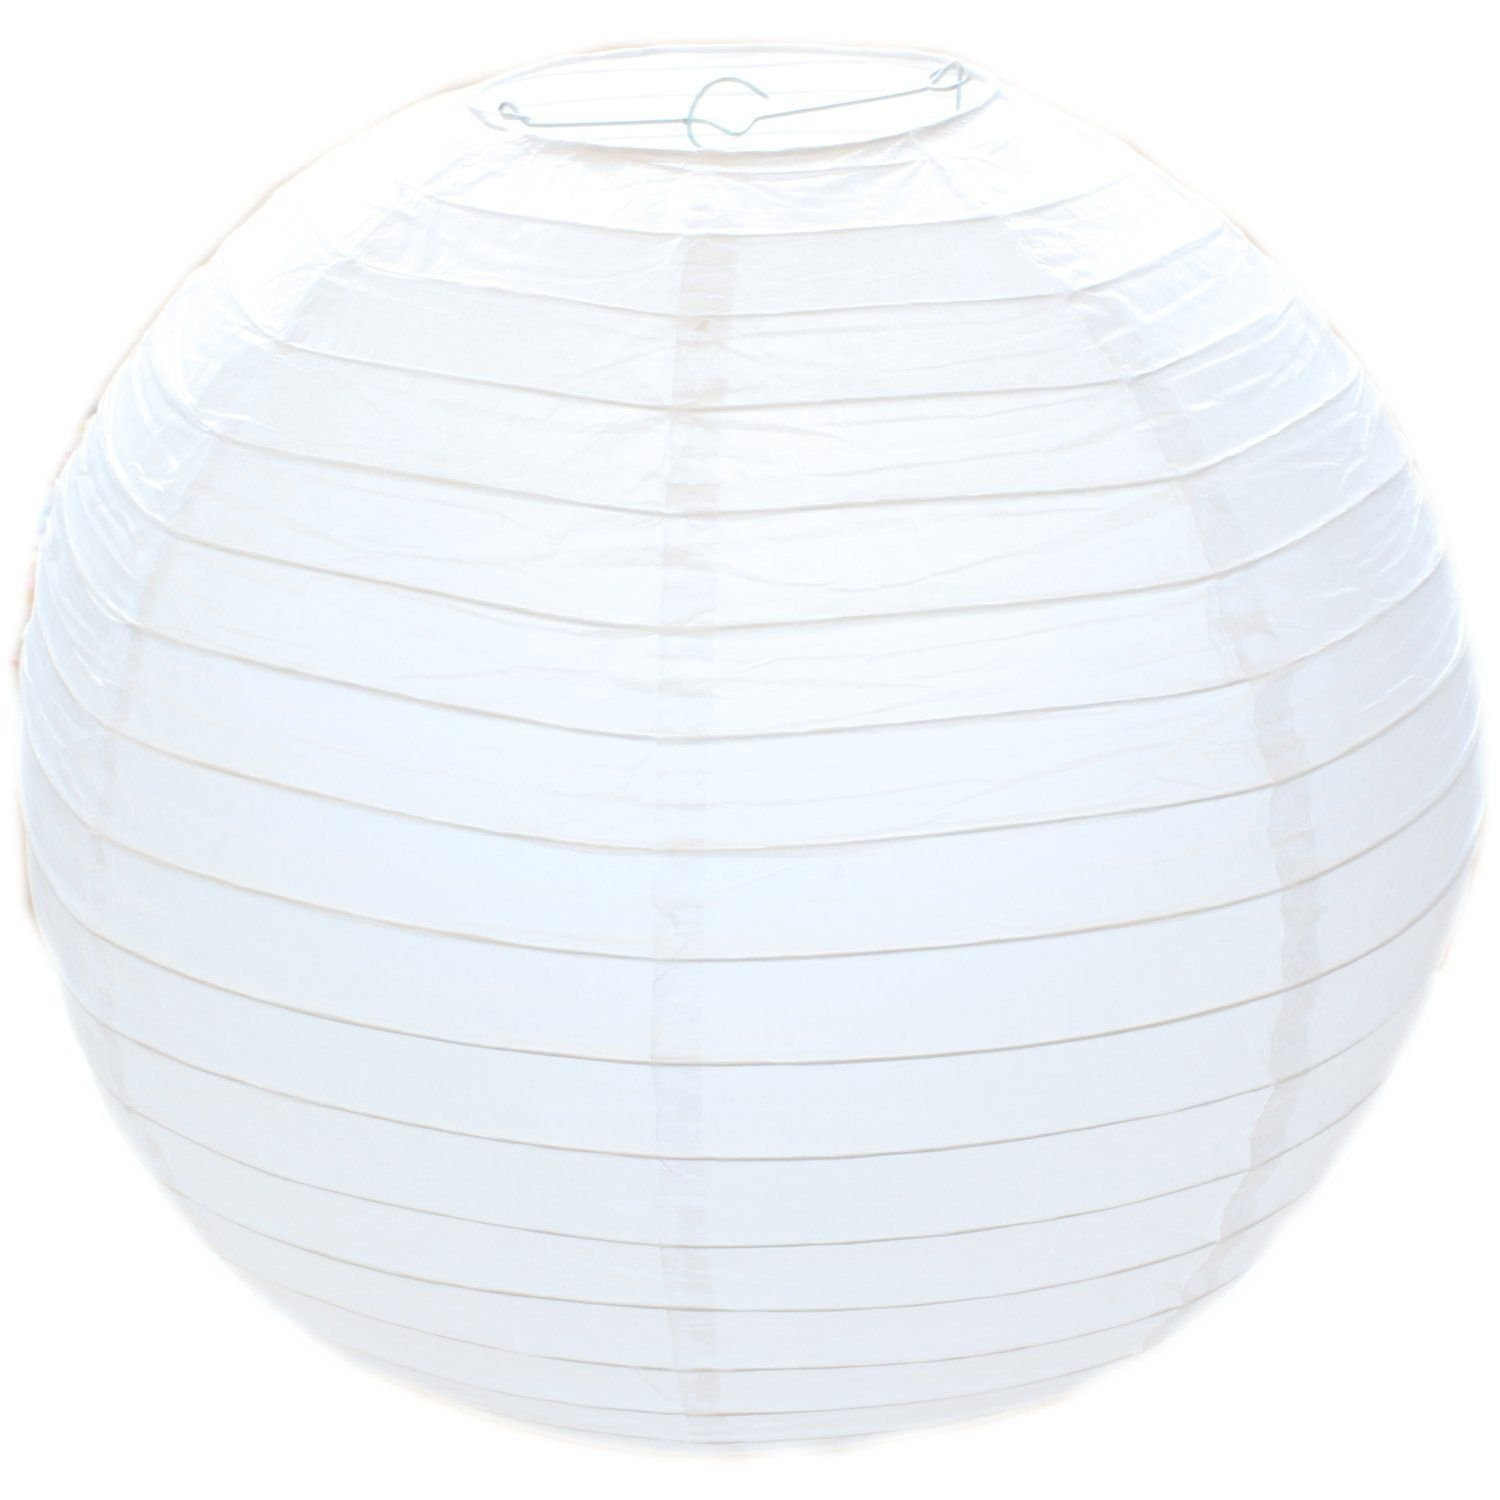 50cm white paper lampshade classic bamboo style ribbed paper 50cm white paper lampshade classic bamboo style ribbed paper lantern lamp shade amazon kitchen home mozeypictures Image collections